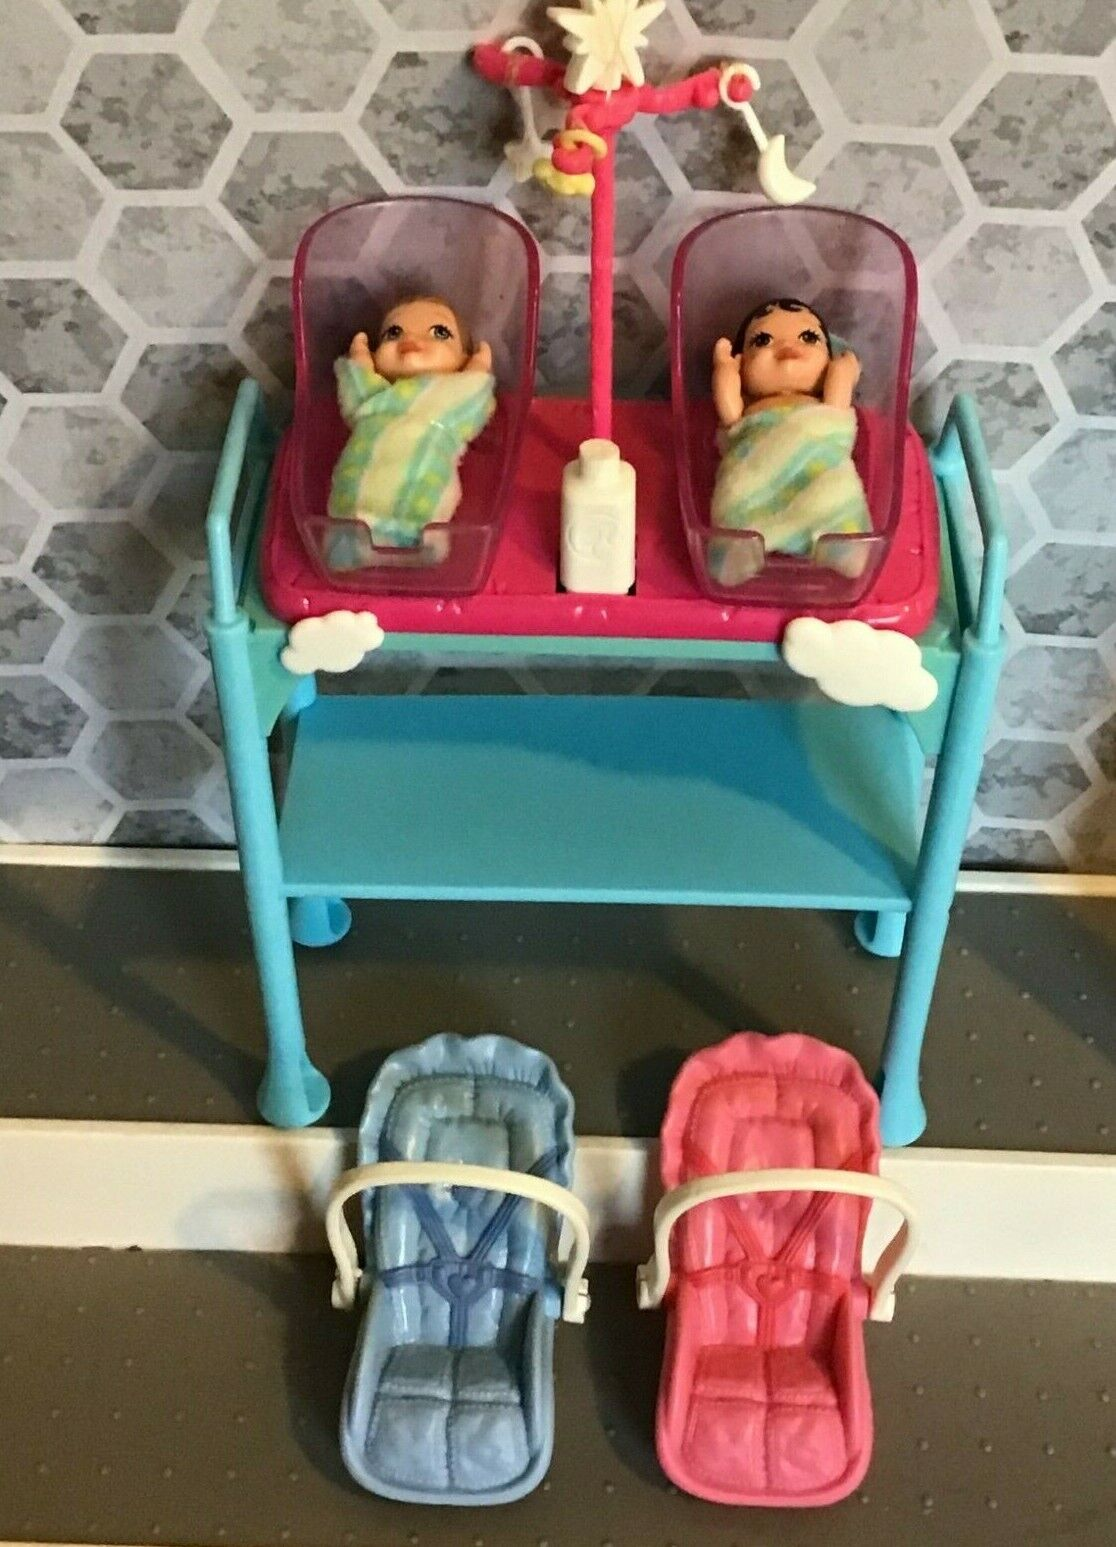 Barbie Doll House Baby Nursery Furniture With 2 Babies Lot - $10.45